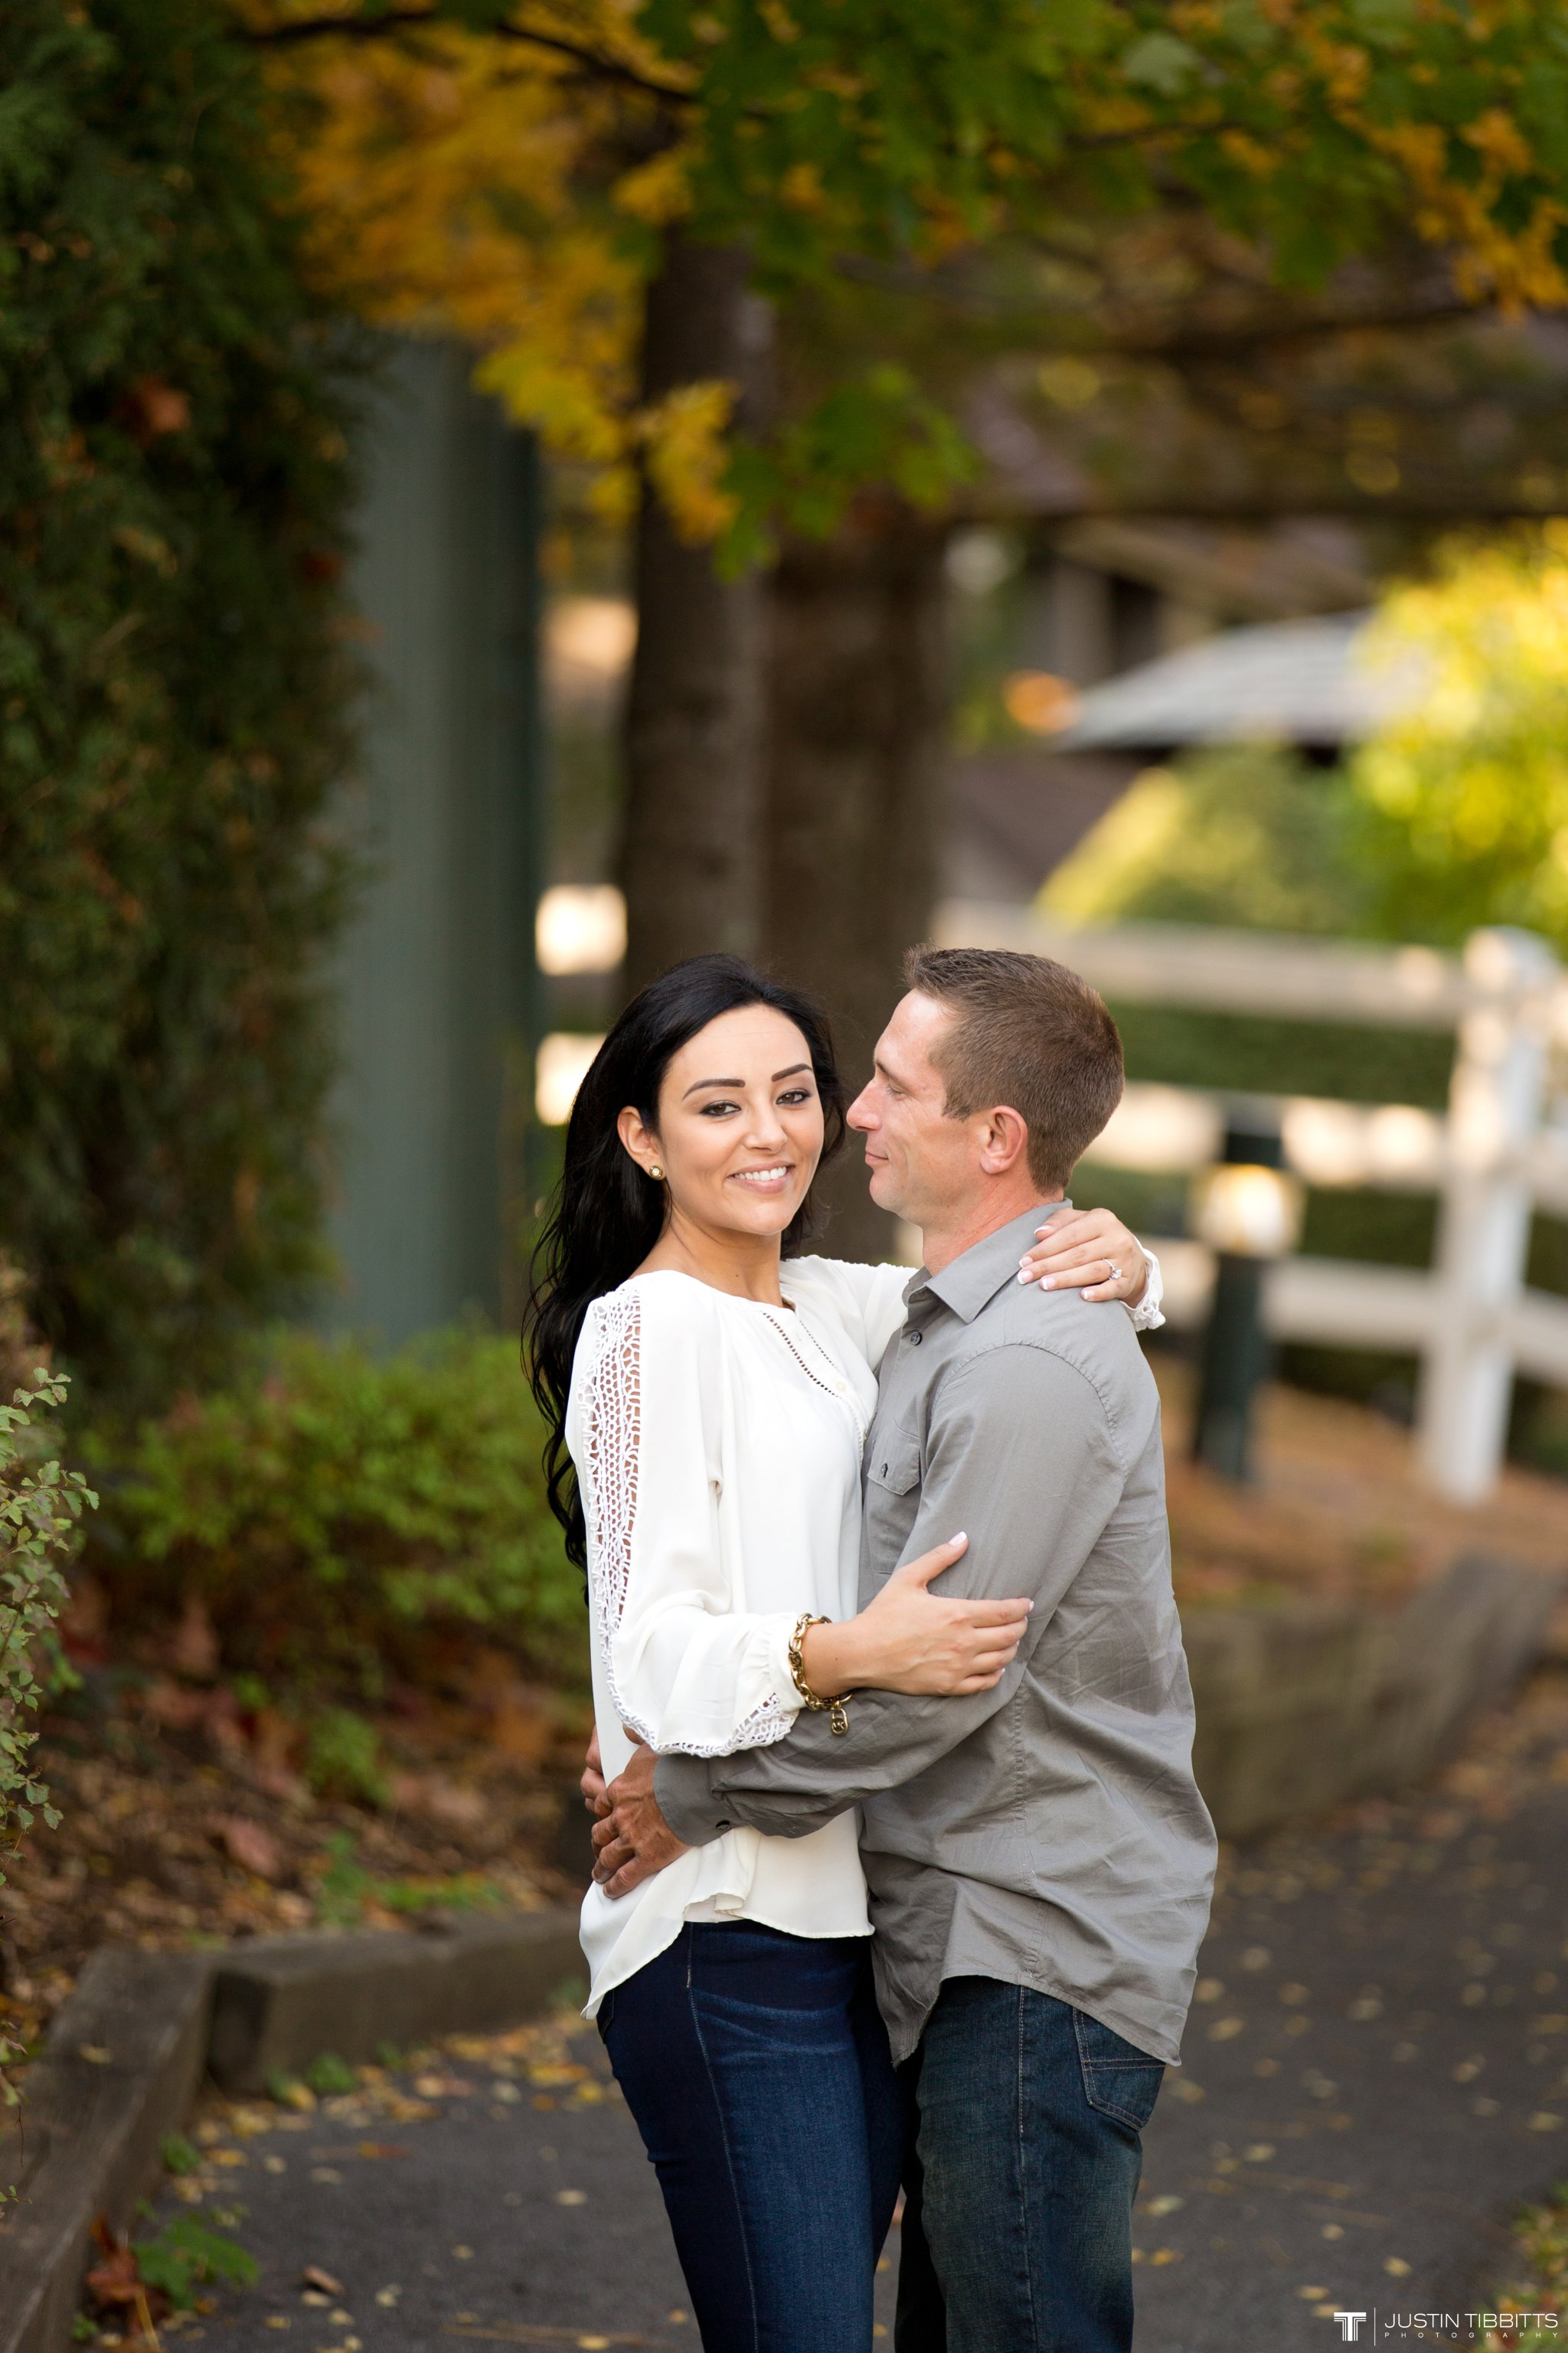 sagamore-engagement-photos-by-justin-tibbitts-photography-with-laina-and-mike_0017